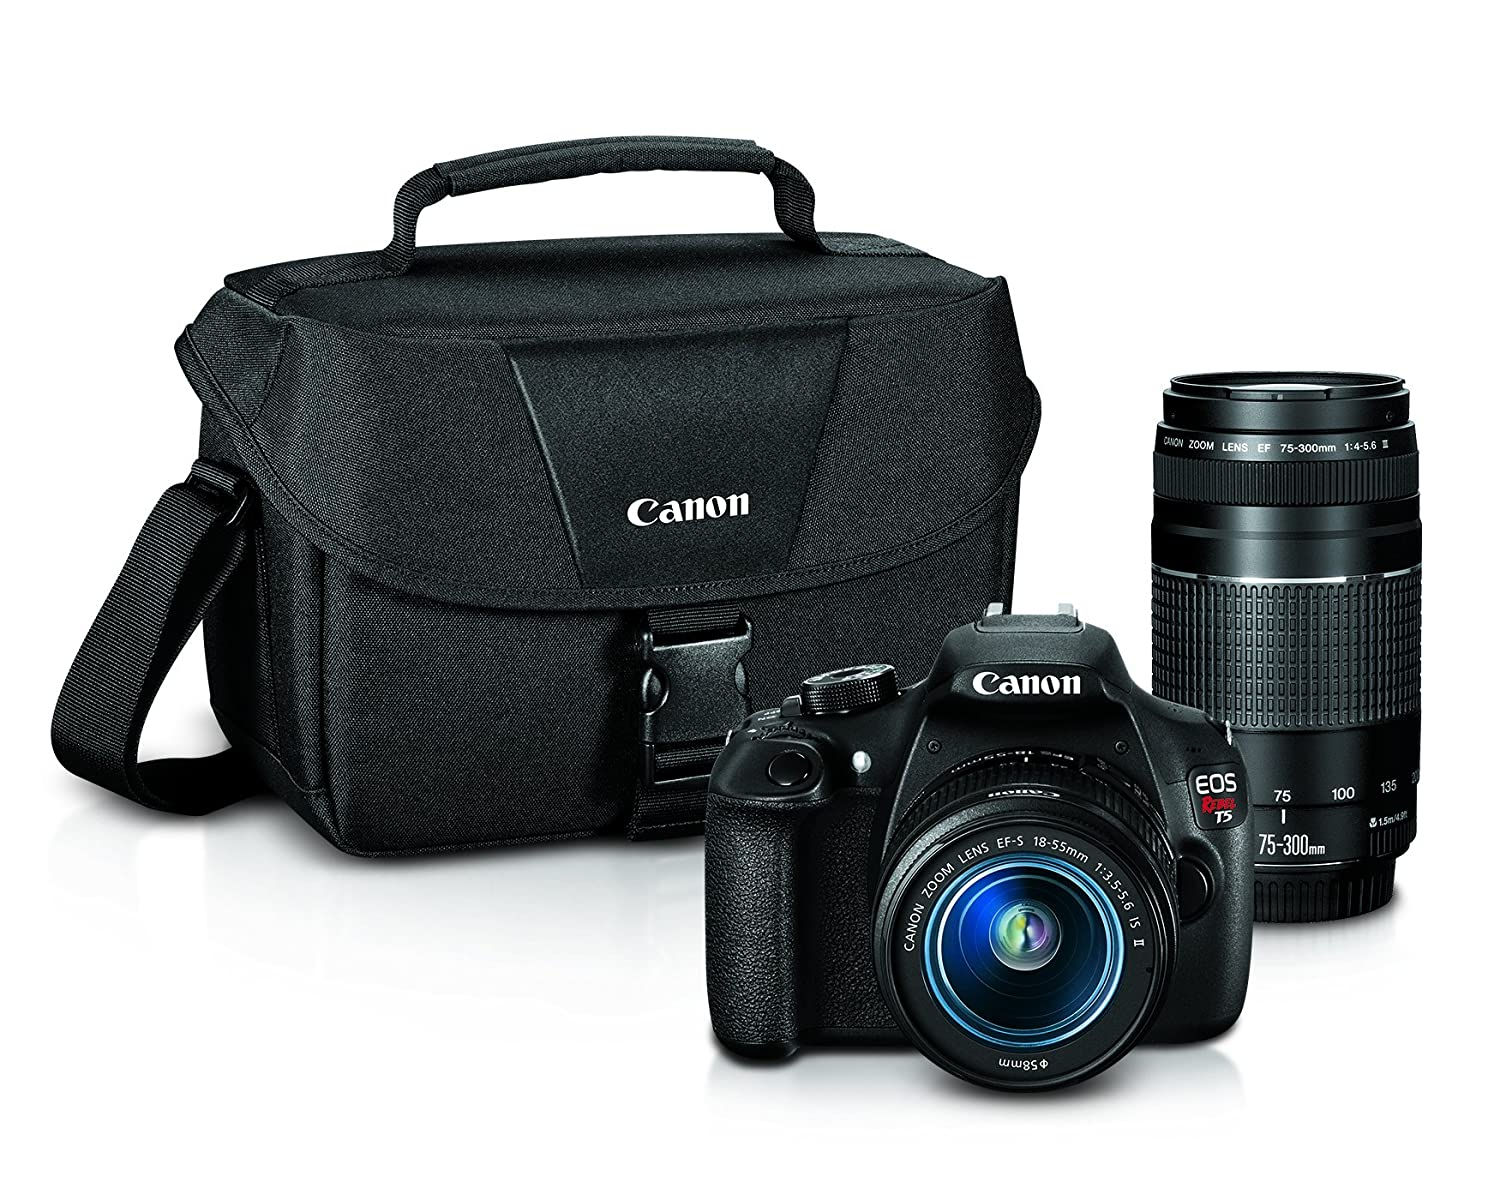 Camera Best Deals On Dslr Cameras In Usa amazon com canon eos rebel t5 digital slr camera with ef s 18 55mm is ii 75 300mm f4 5 6 iii bundle photo